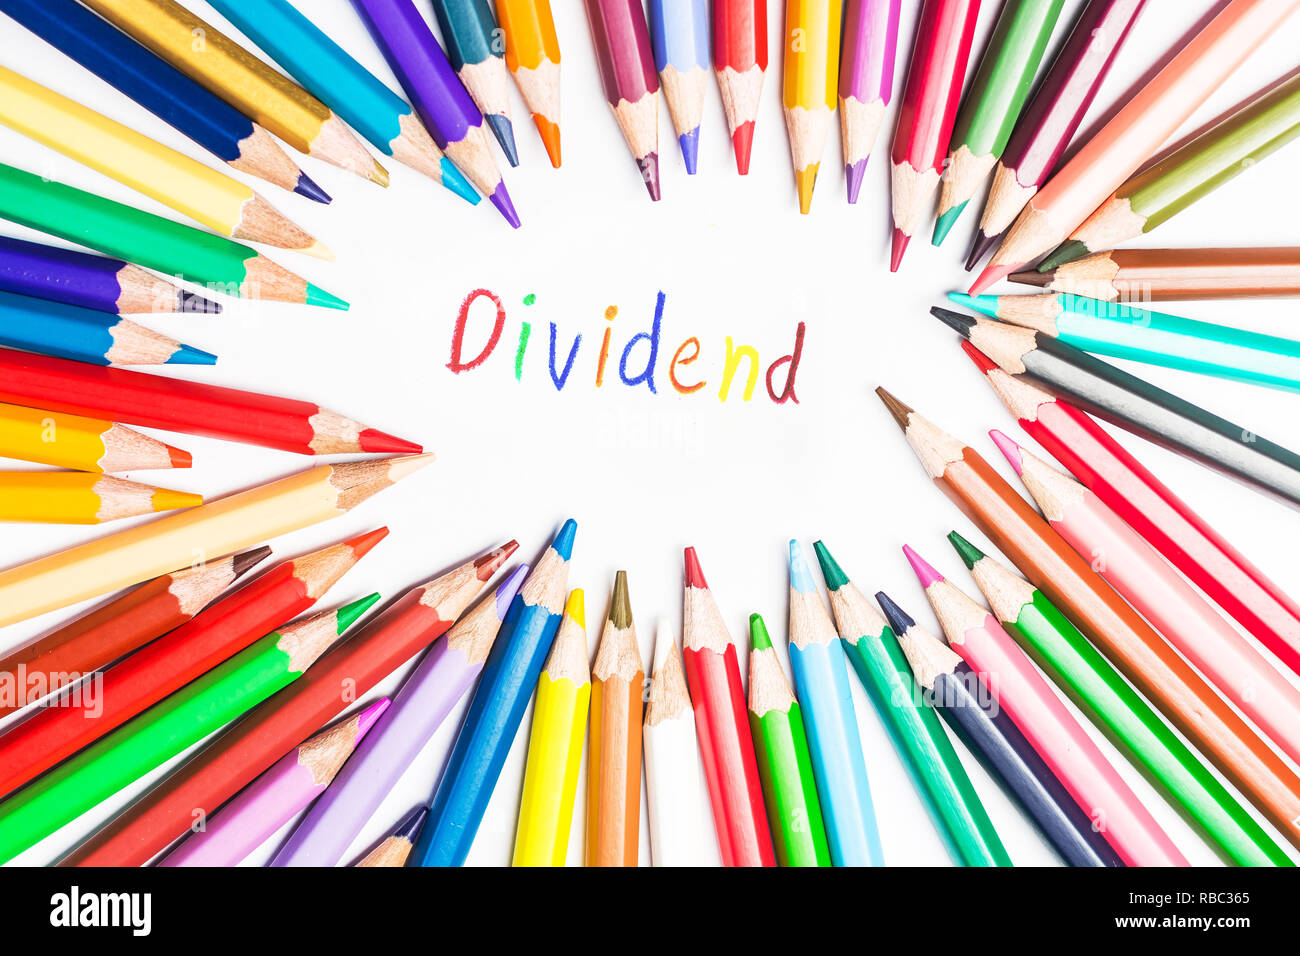 Dividend drawing by colour pencils - Stock Image